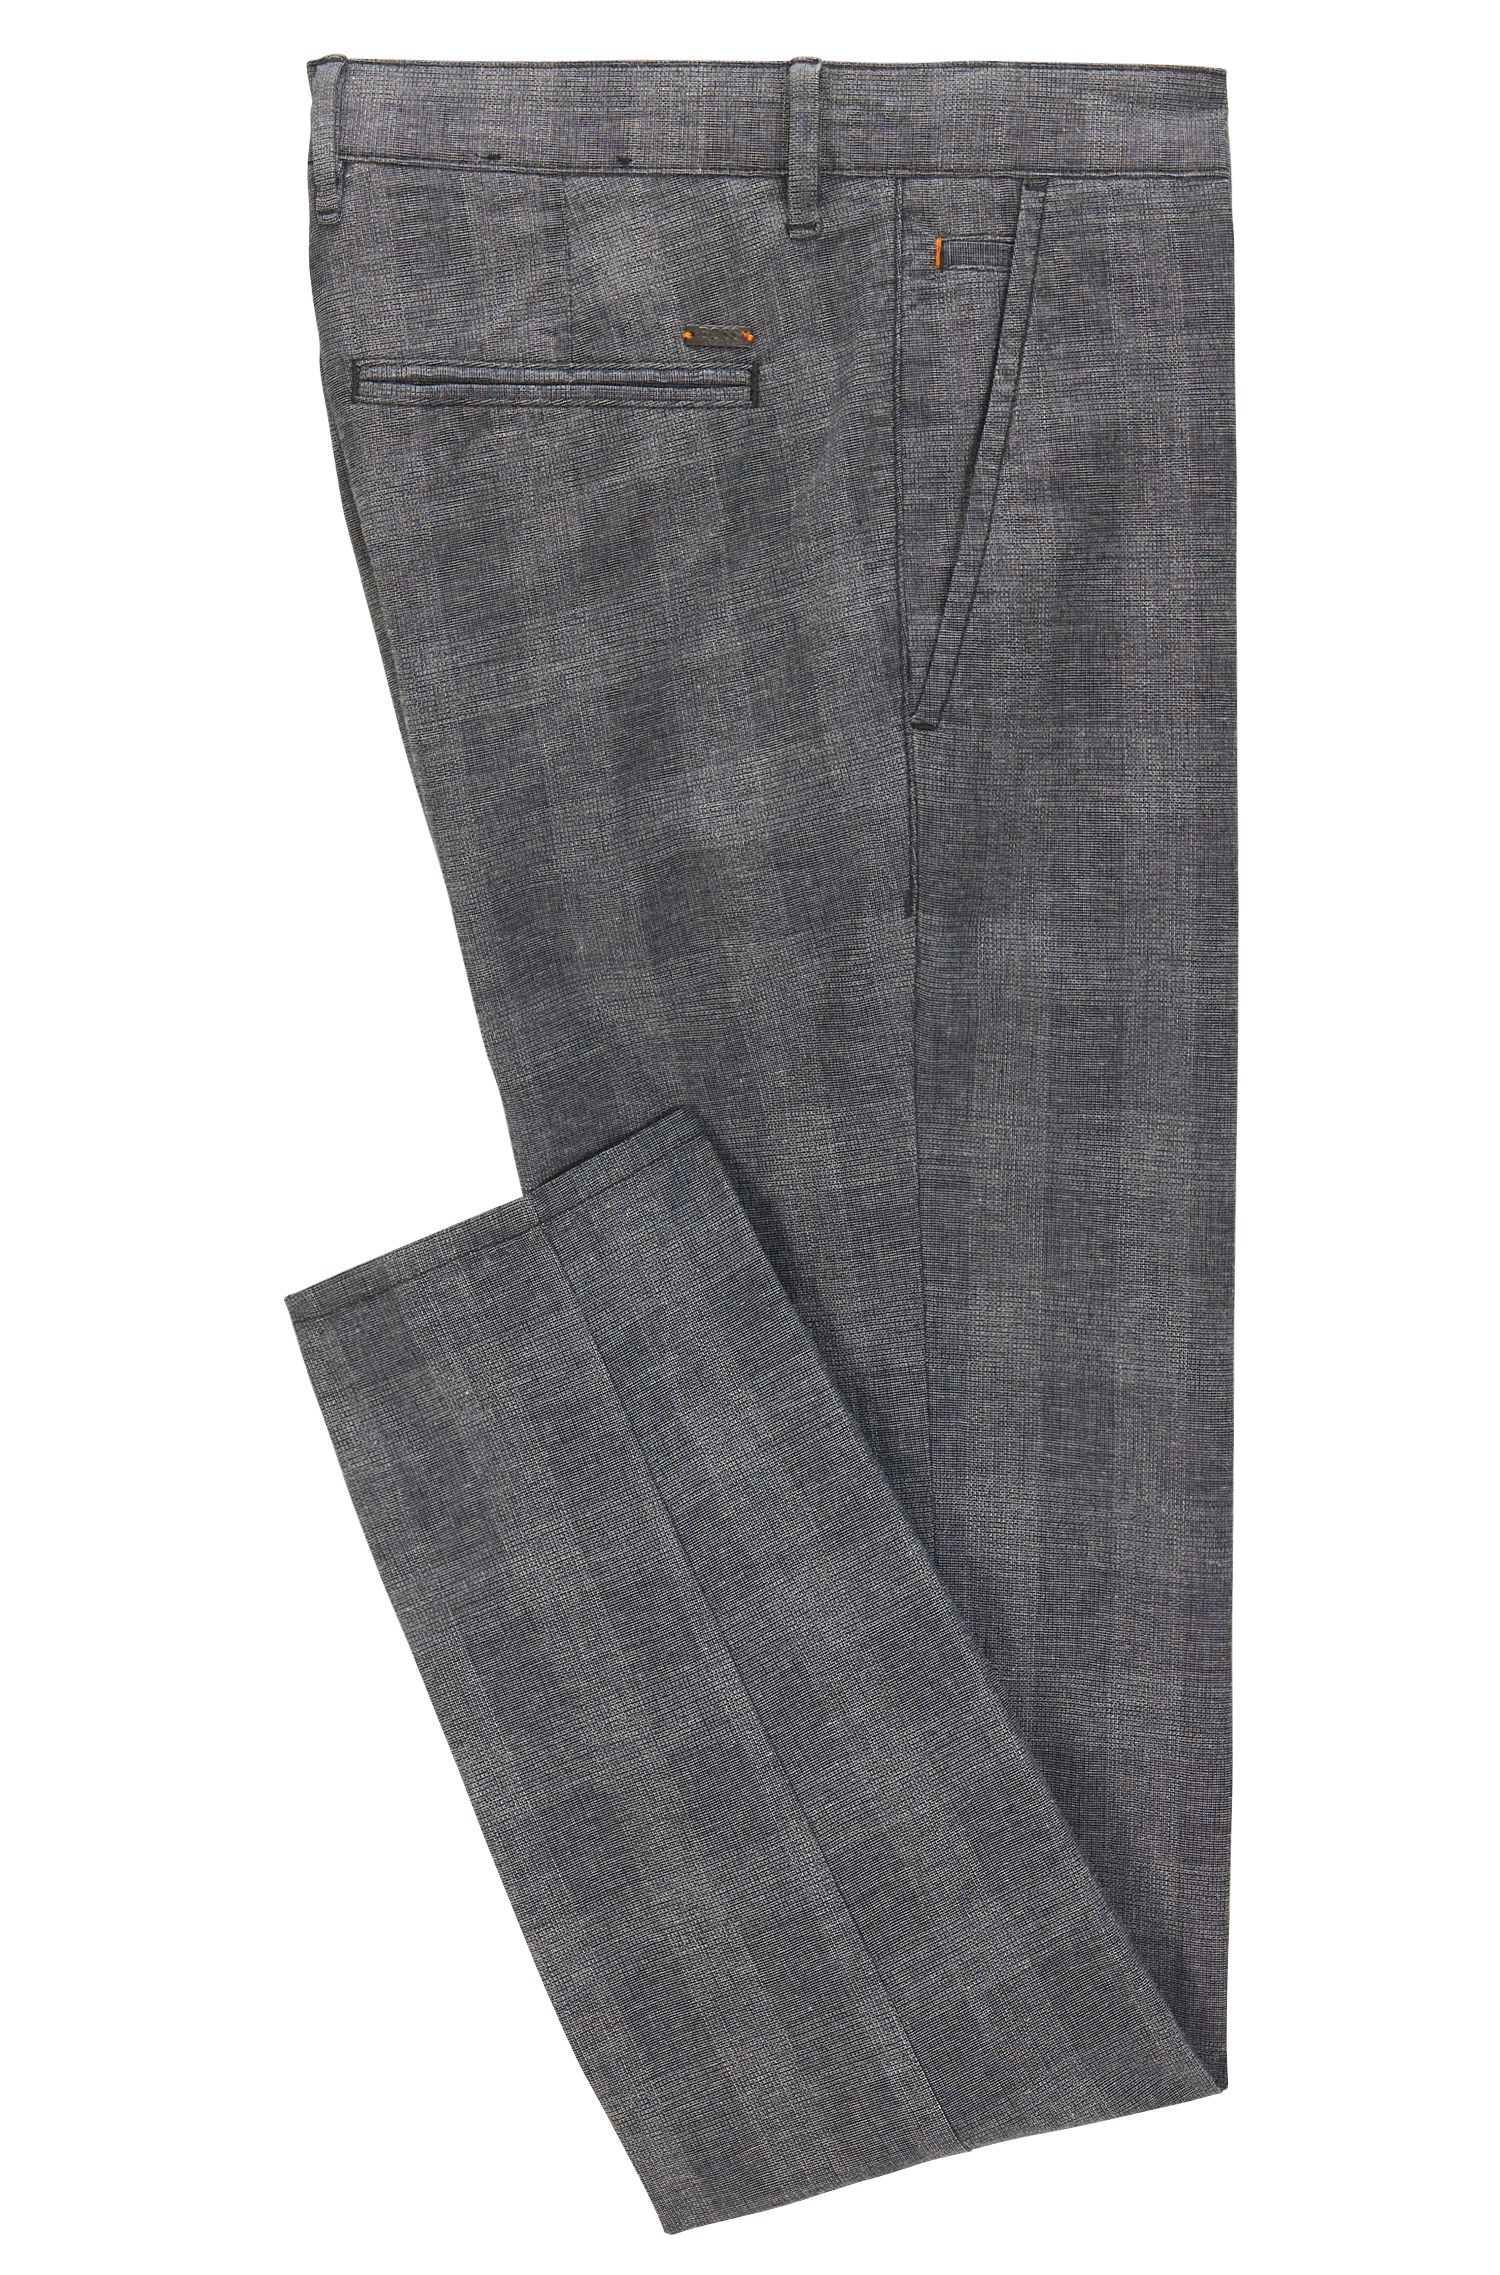 Glen Check Stretch Cotton Pant, Slim Fit | Schino Slim CW, Black